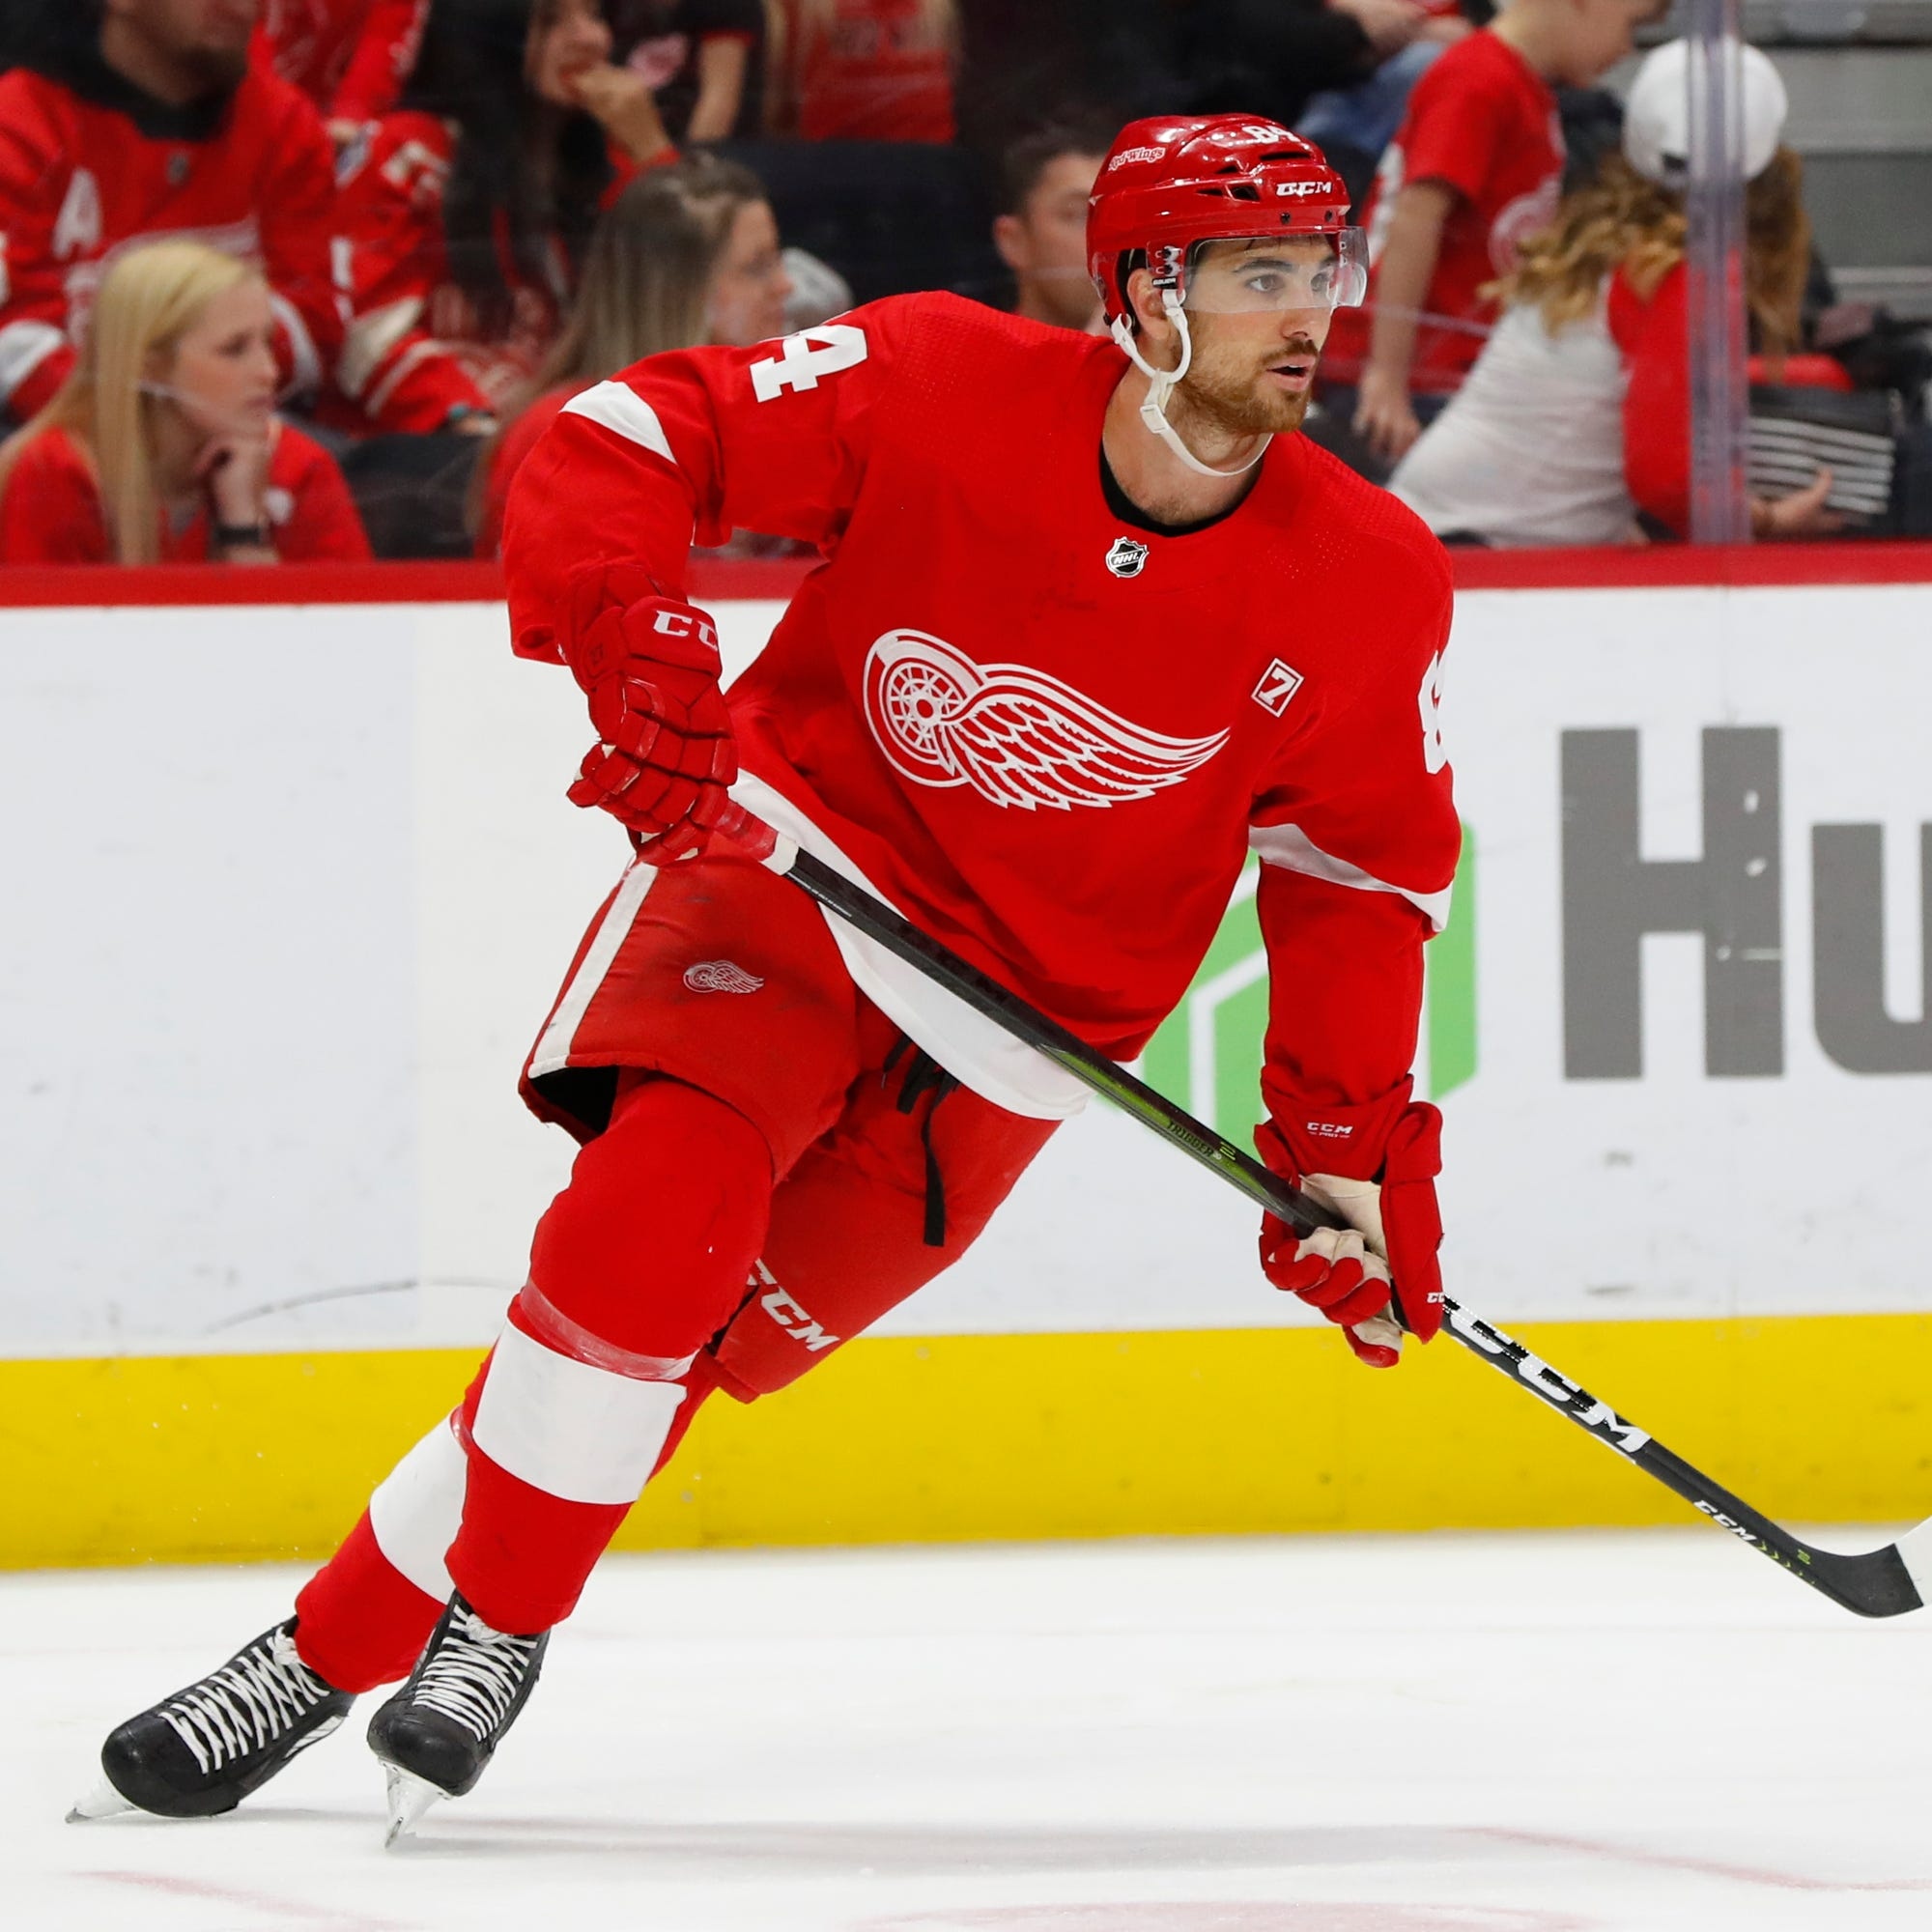 Red Wings' Jake Chelios basking in 'unbelievable experience' of NHL debut